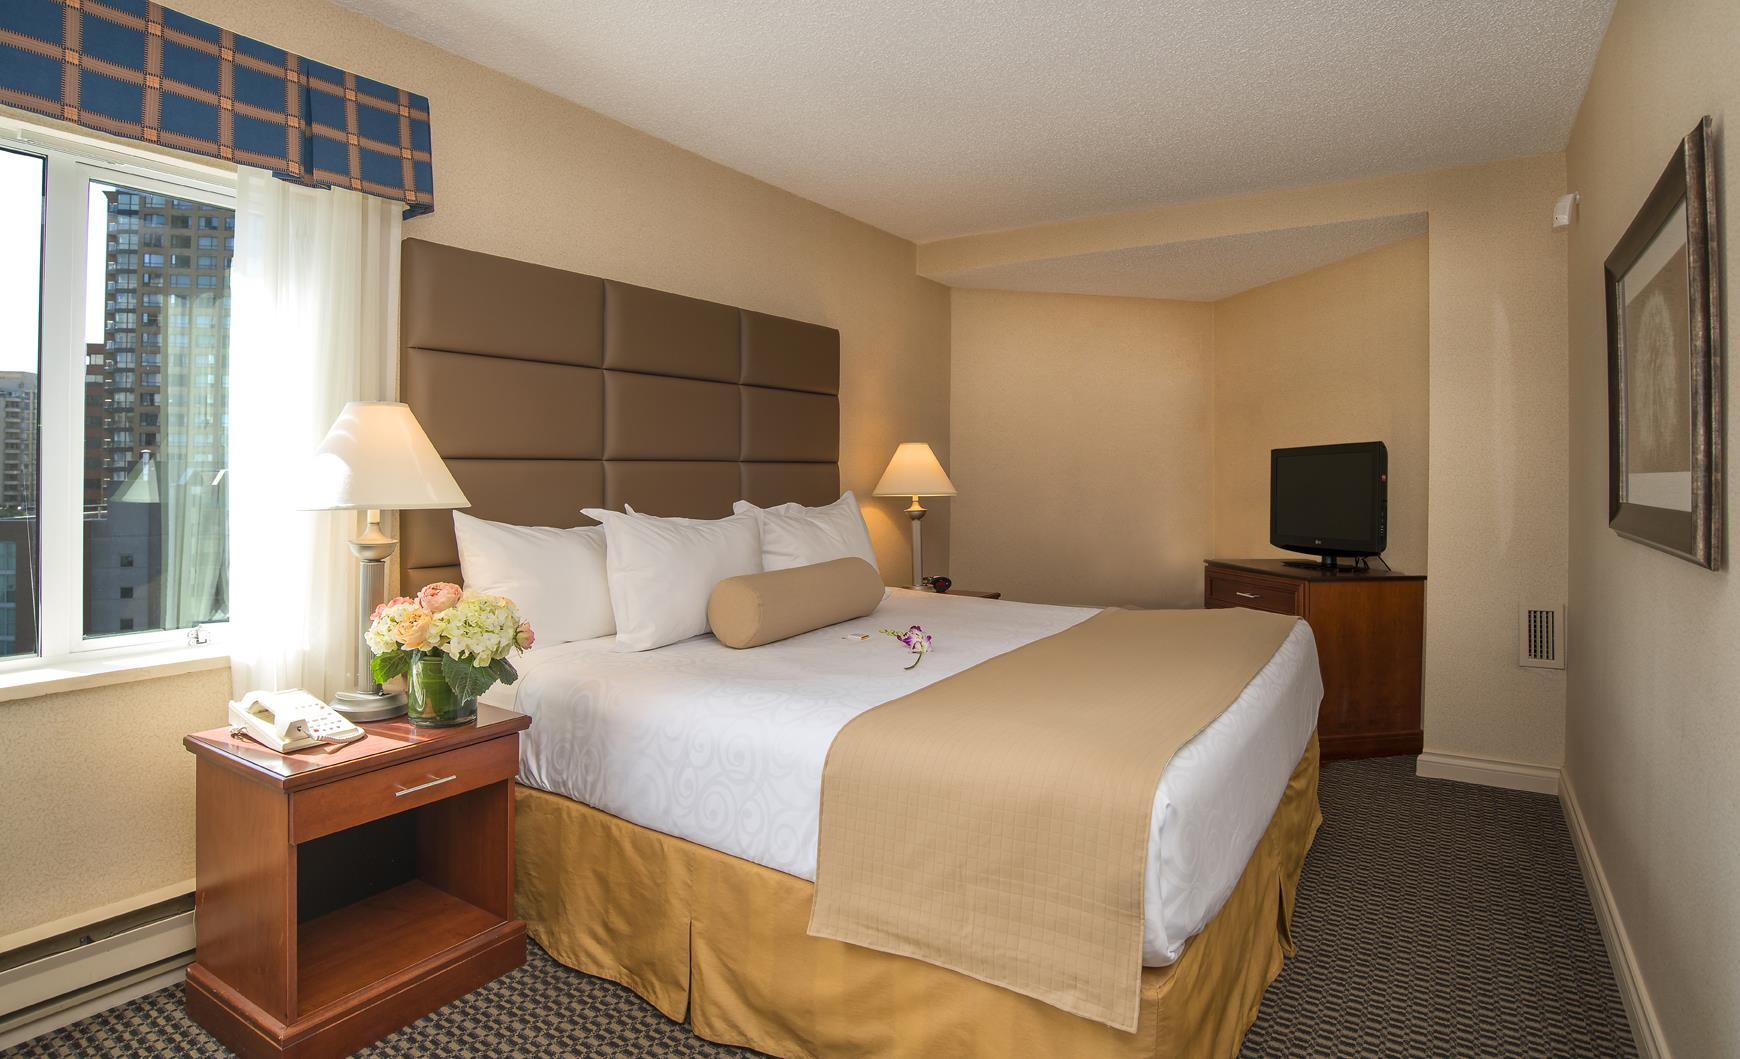 Best Western Plus Chateau Granville Hotel & Suites & Conference Ctr. in Vancouver: King Suite